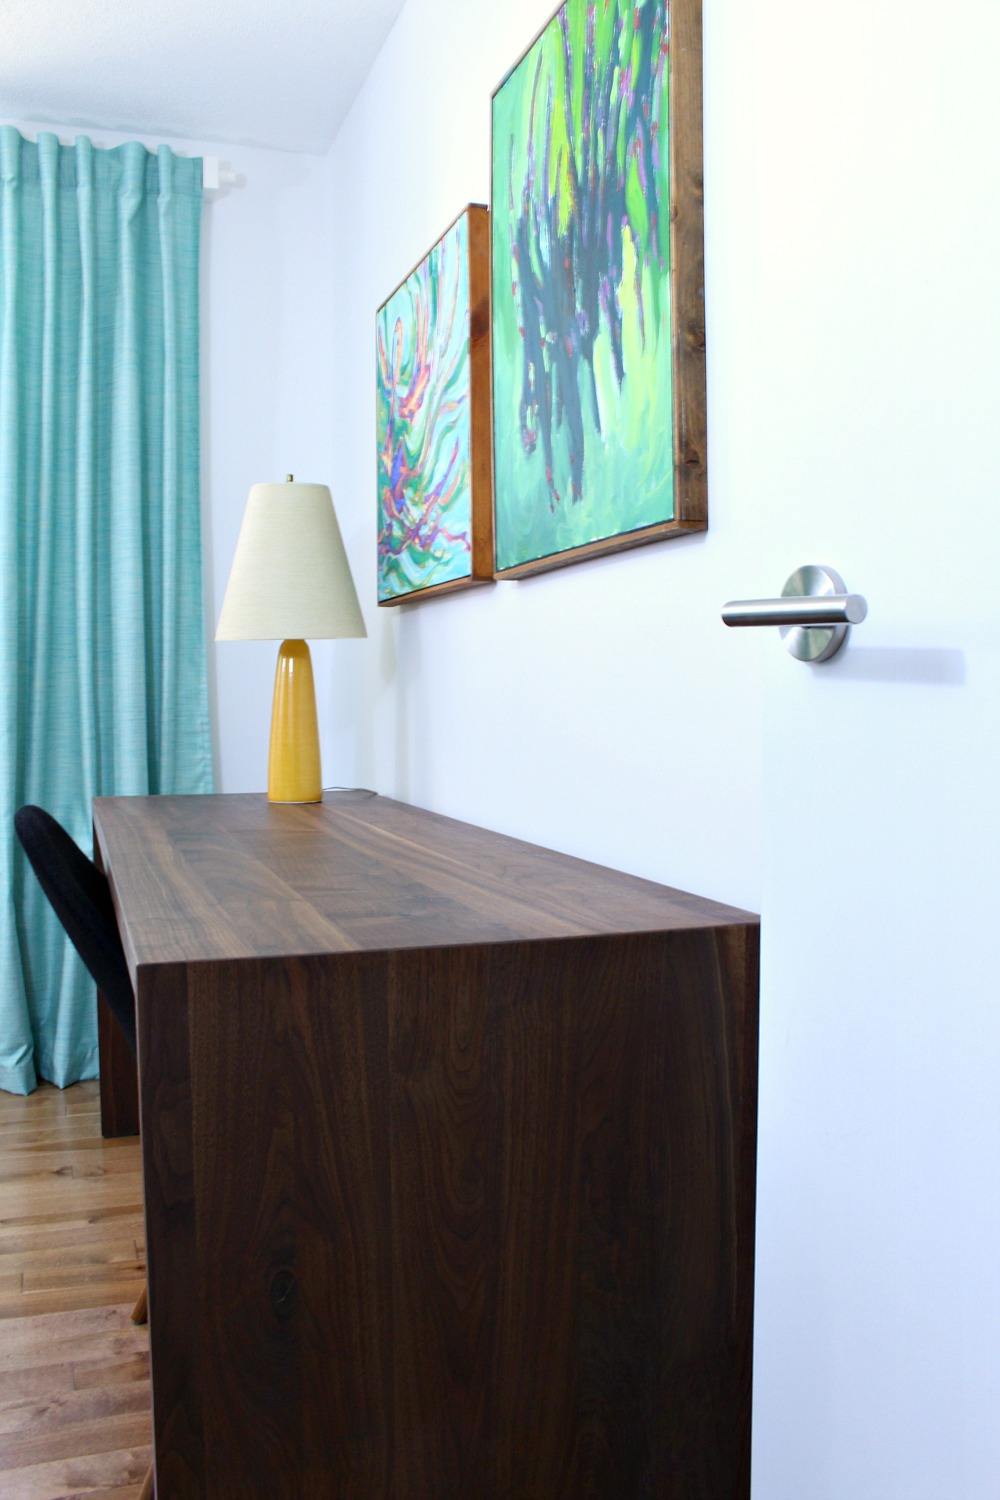 DIY Solid Walnut Desk Tutorial + Photos // www.danslelakehouse.com // @danslelakehouse